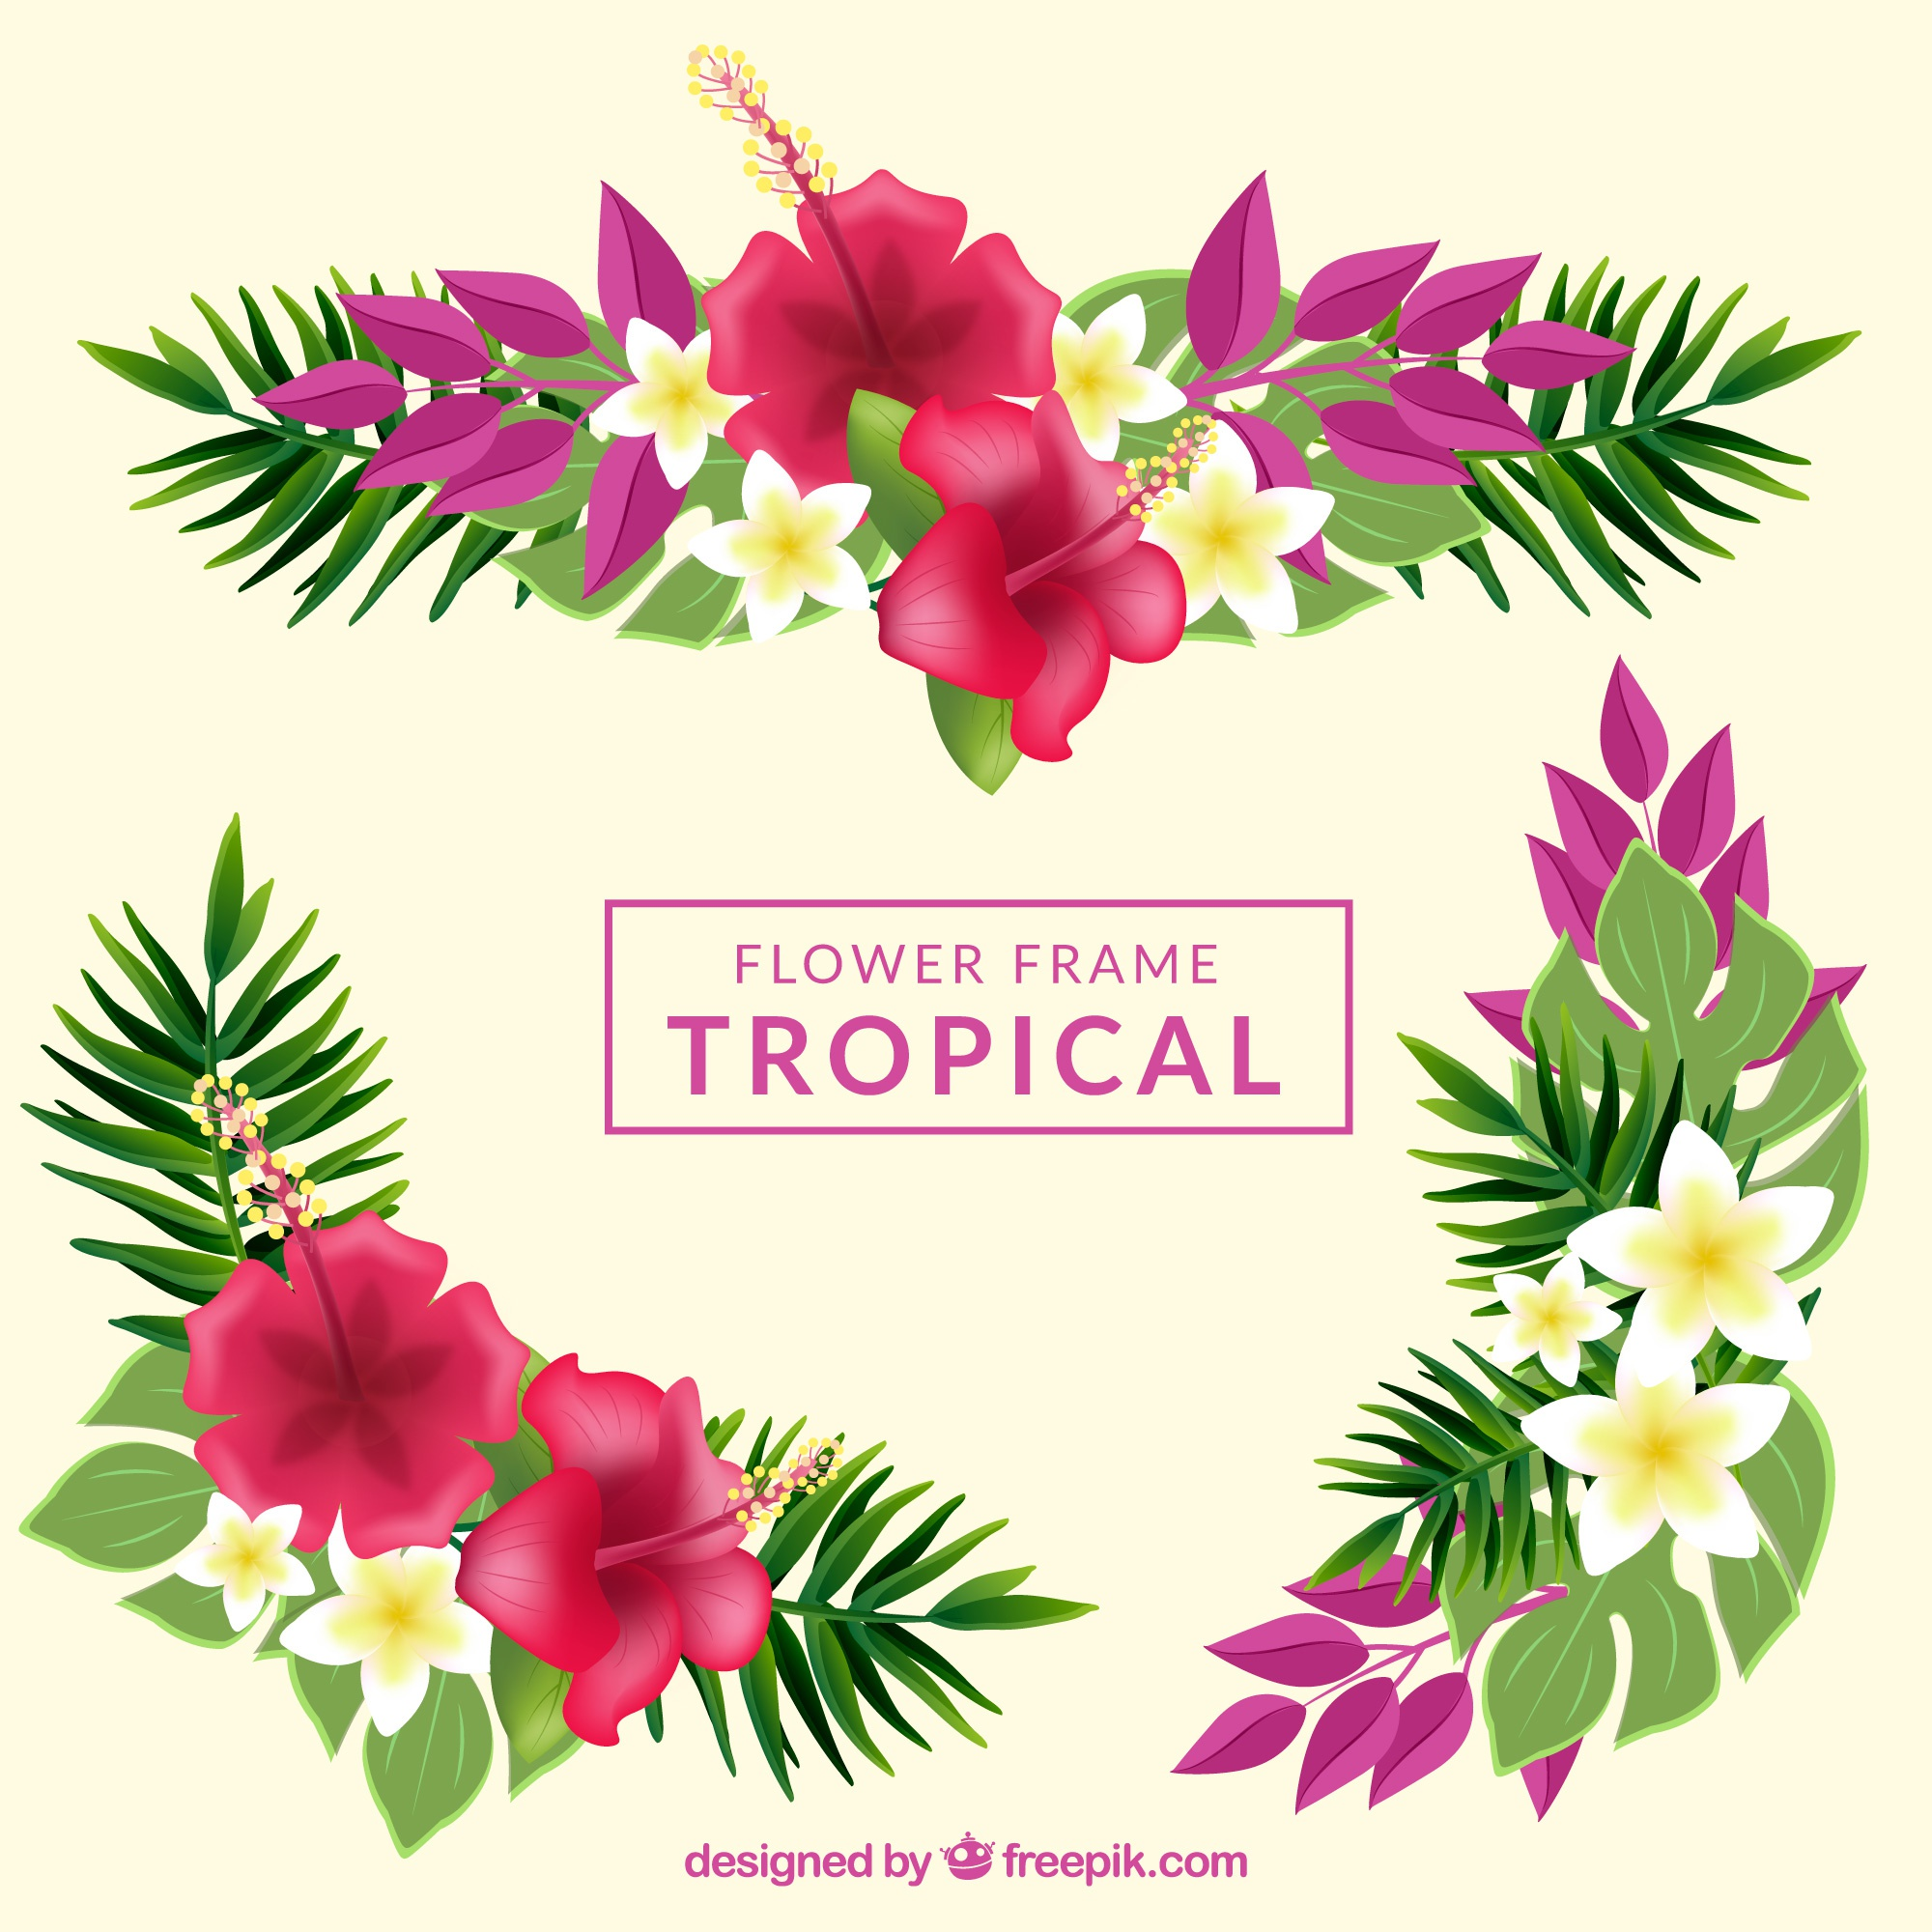 Tropical flowers frame background